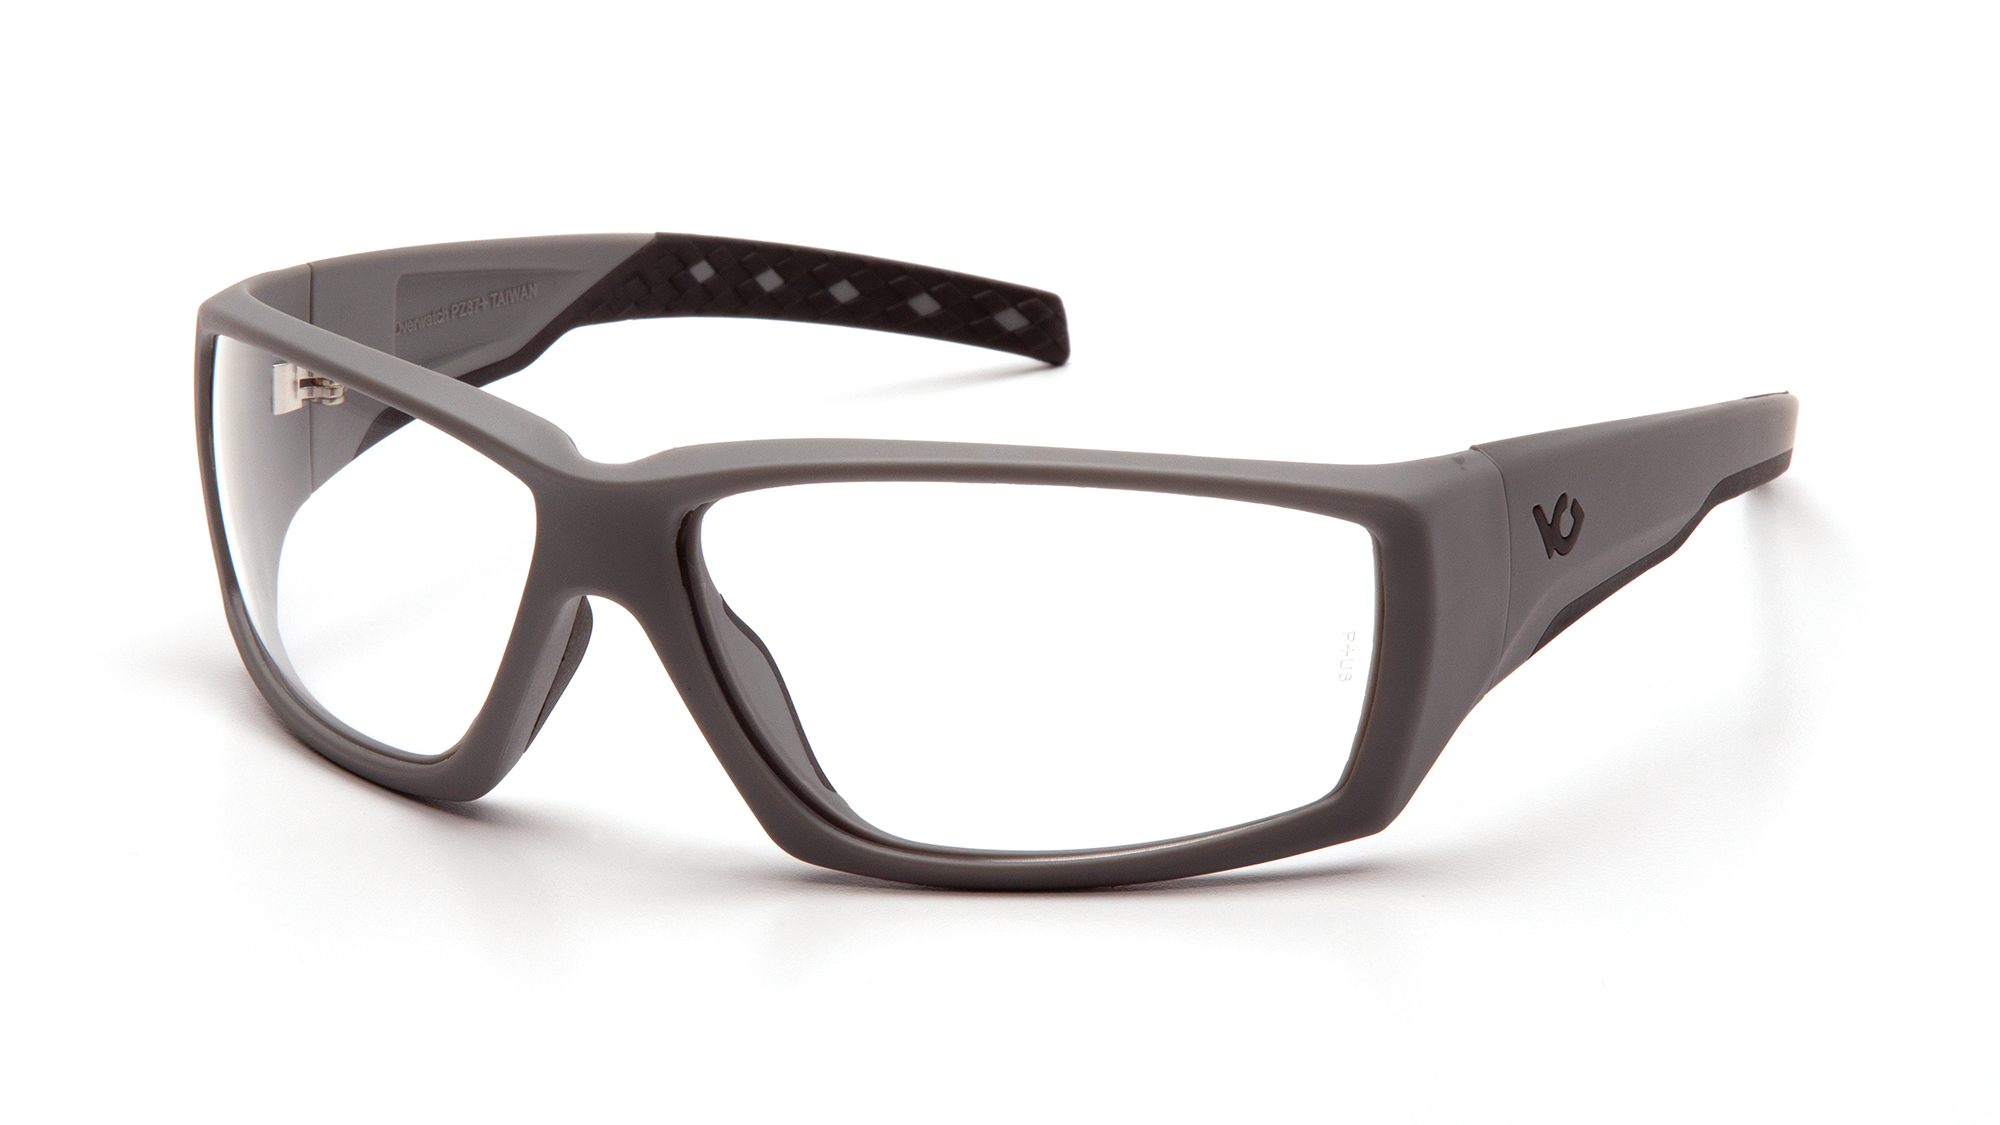 Venturegear Tactical - Overwatch Safety Glasses - Clear Anti-Fog Lens Urban Gray Frame